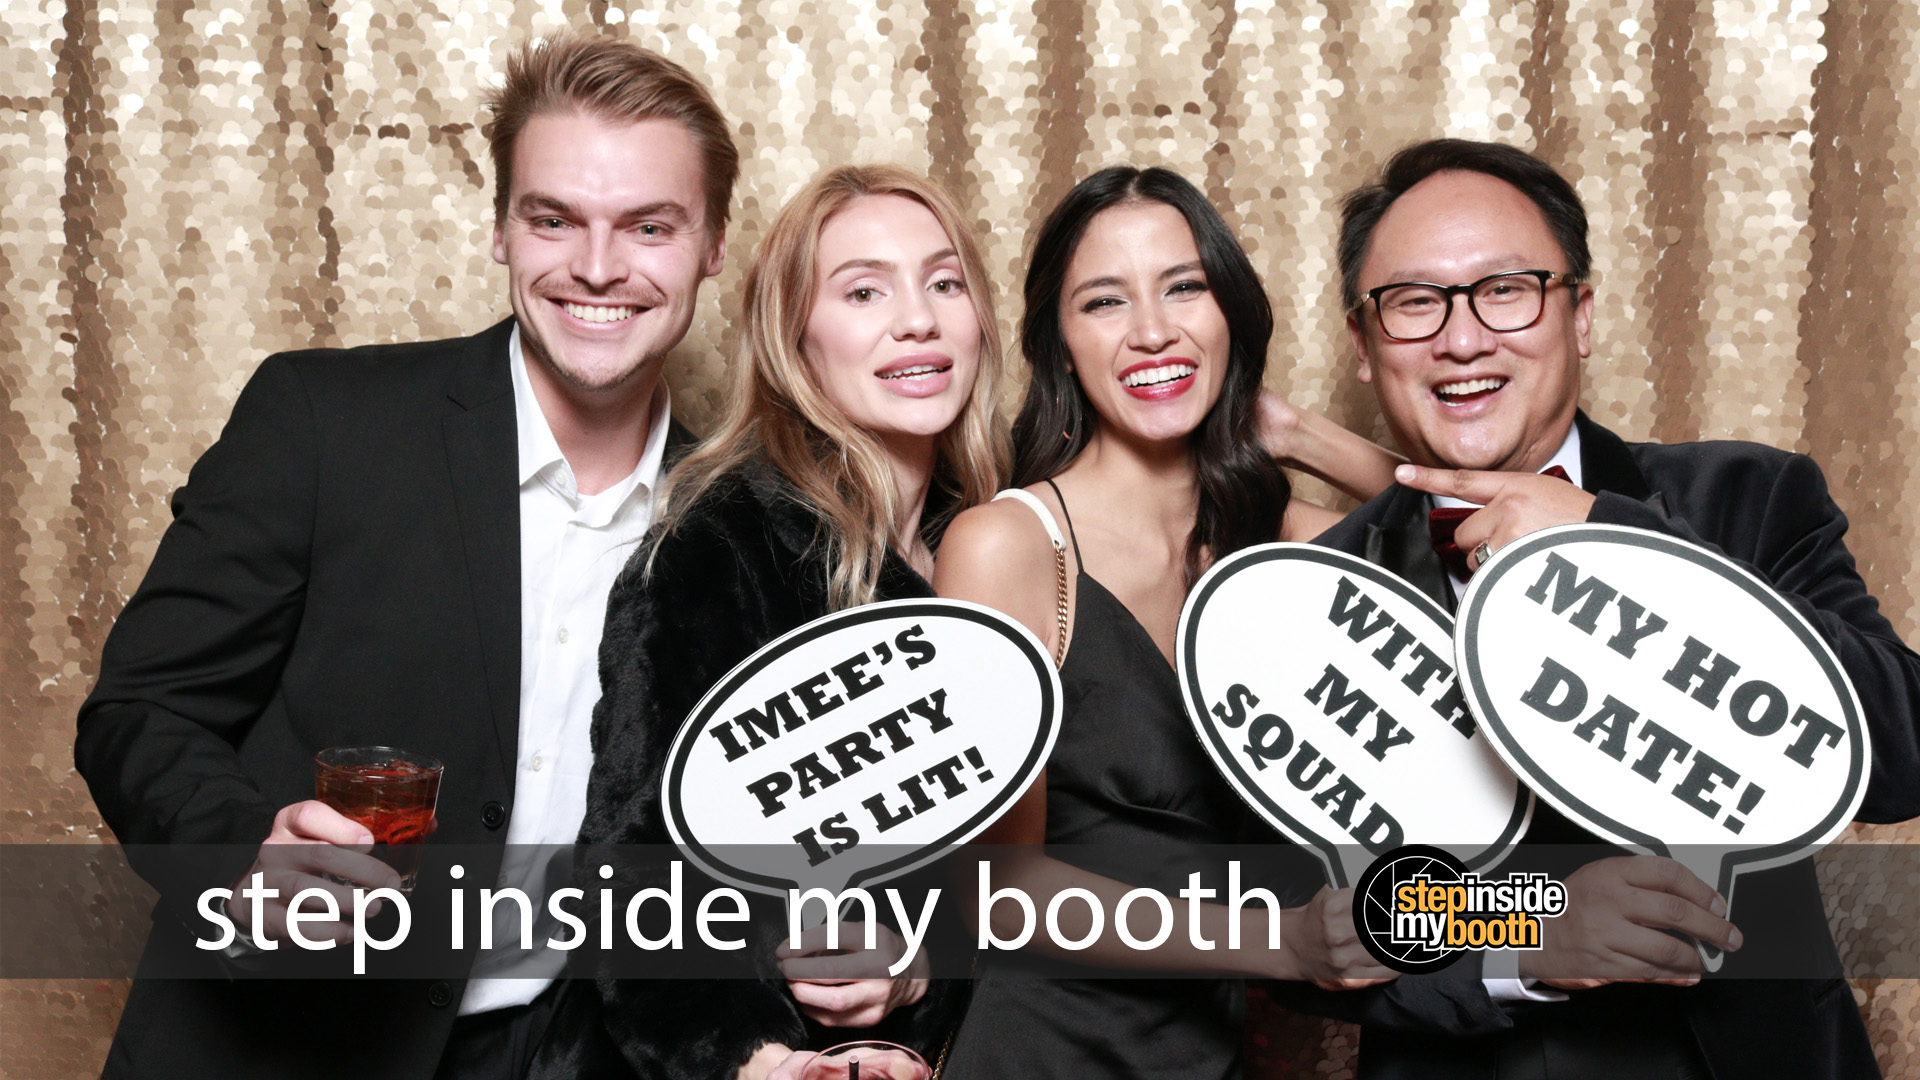 Photo Booth Rental in Hollywood, Photo booth for hire in West Hollywood, Photo booth rental for Hollywood Roosevelt Hotel